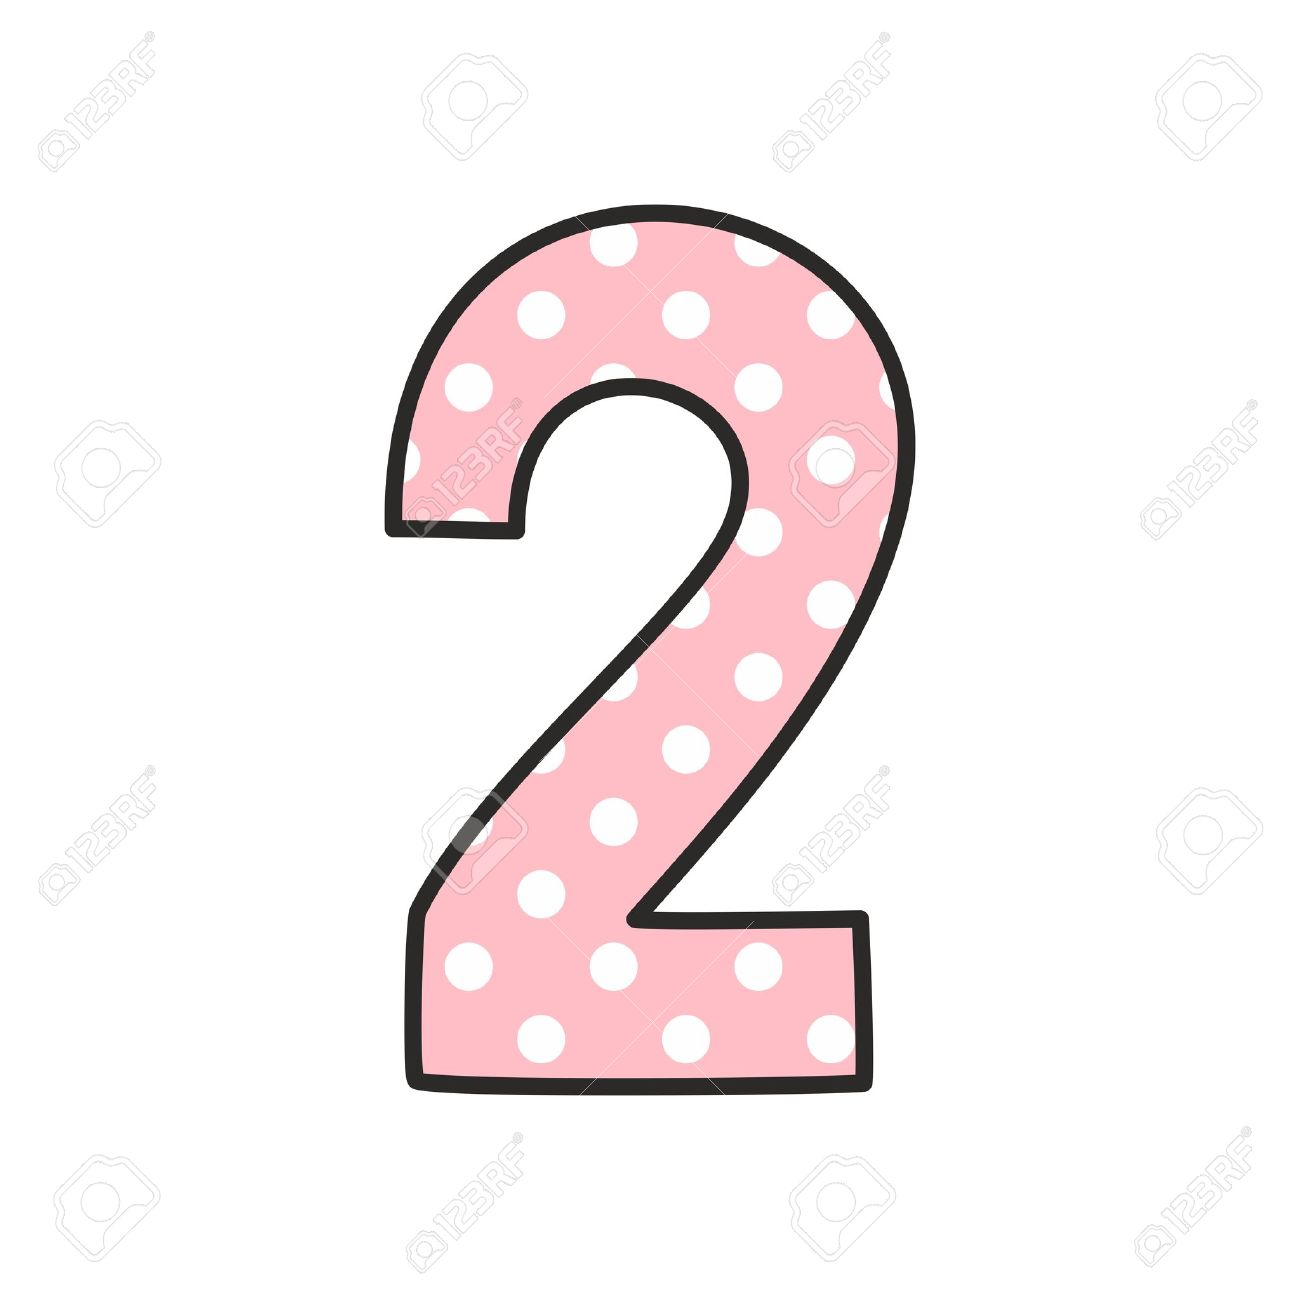 number 2 with white polka dots on pastel pink vector illustration